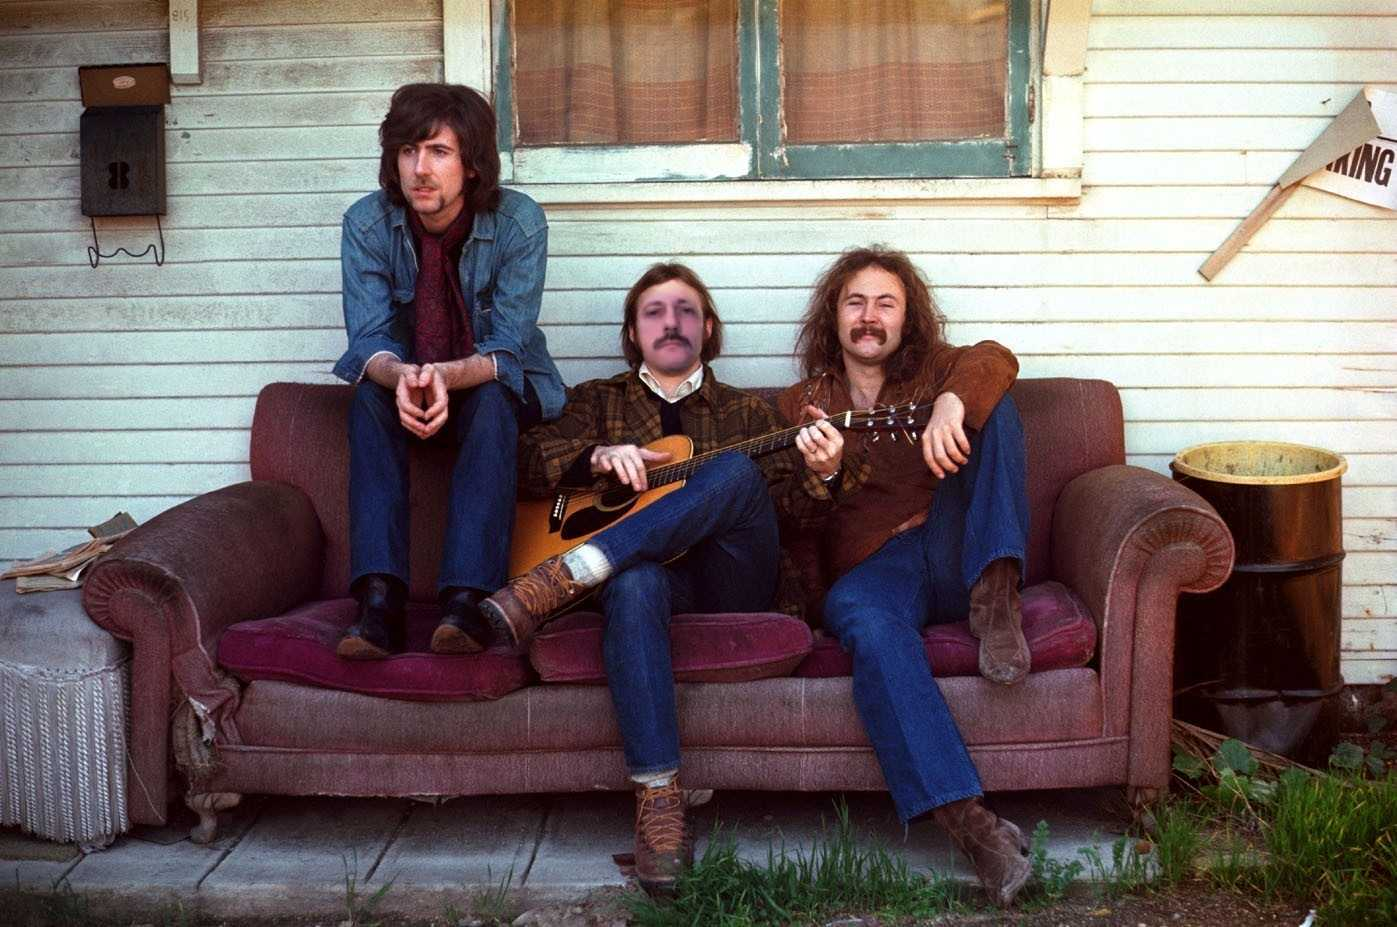 Crosby, Stills, & Nash?